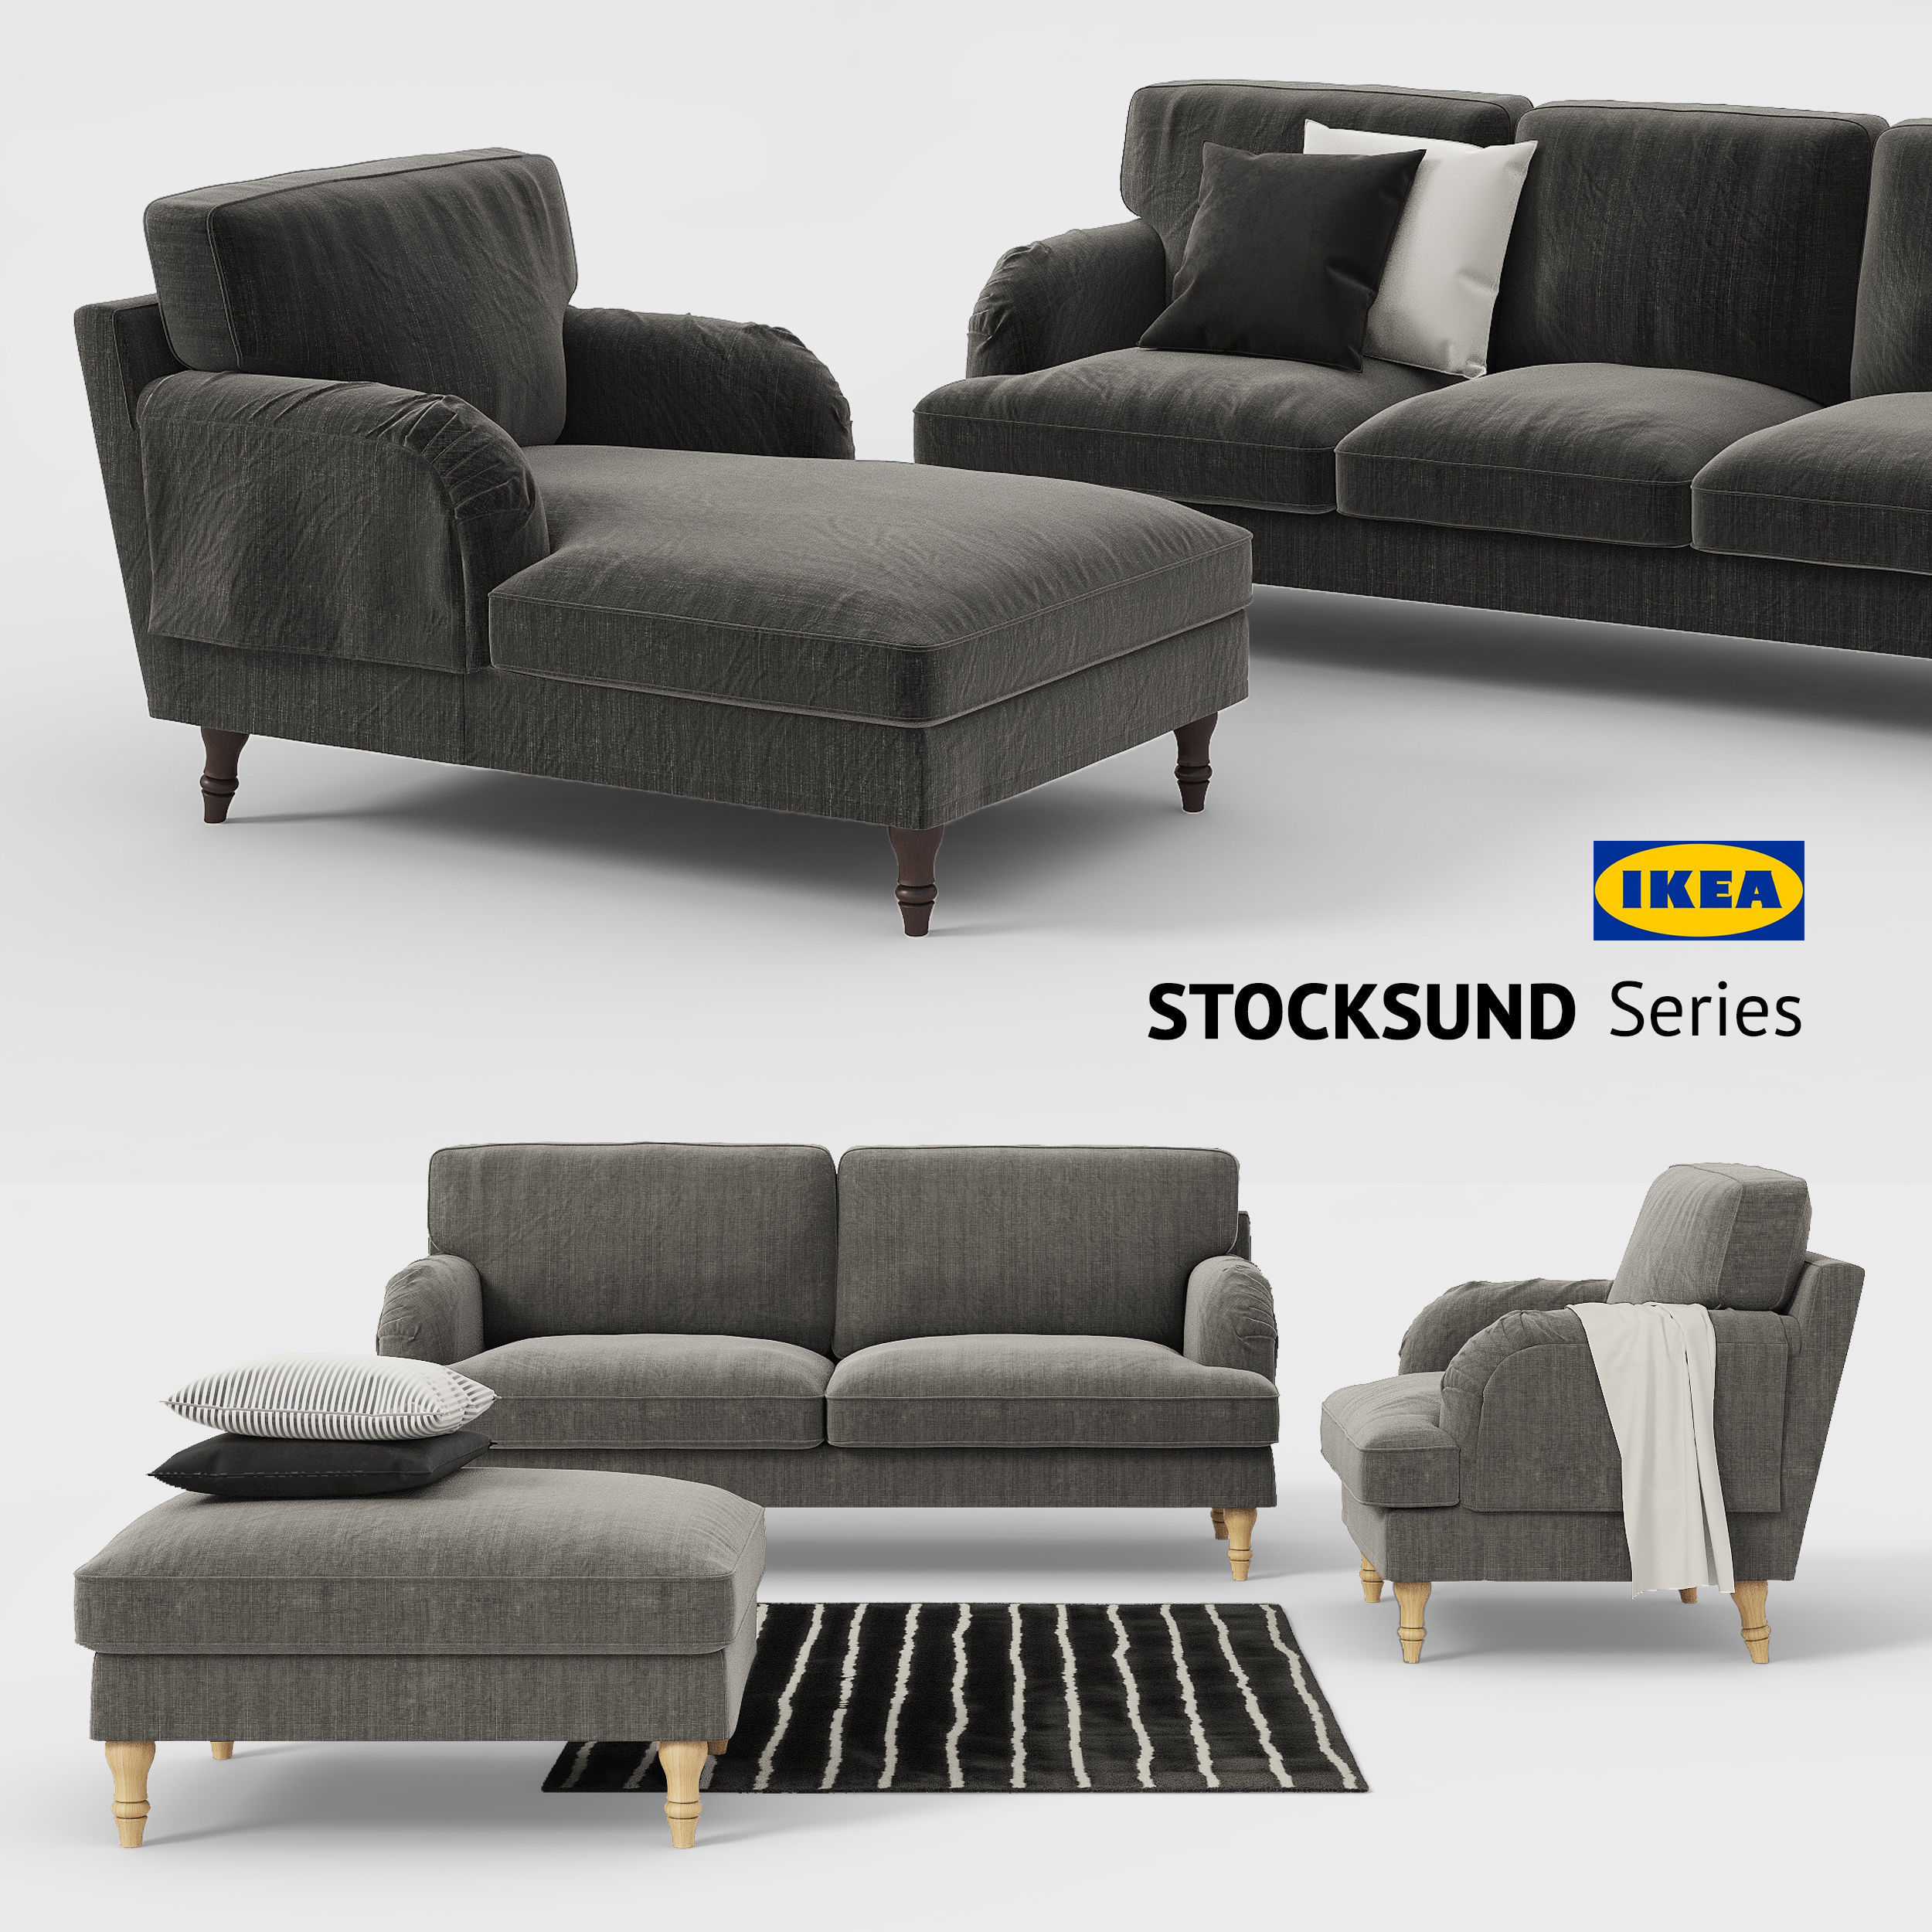 Astonishing Ikea Stocksund Sofa Chair Ottoman Chaise Sofa Cover 3D Model Gmtry Best Dining Table And Chair Ideas Images Gmtryco